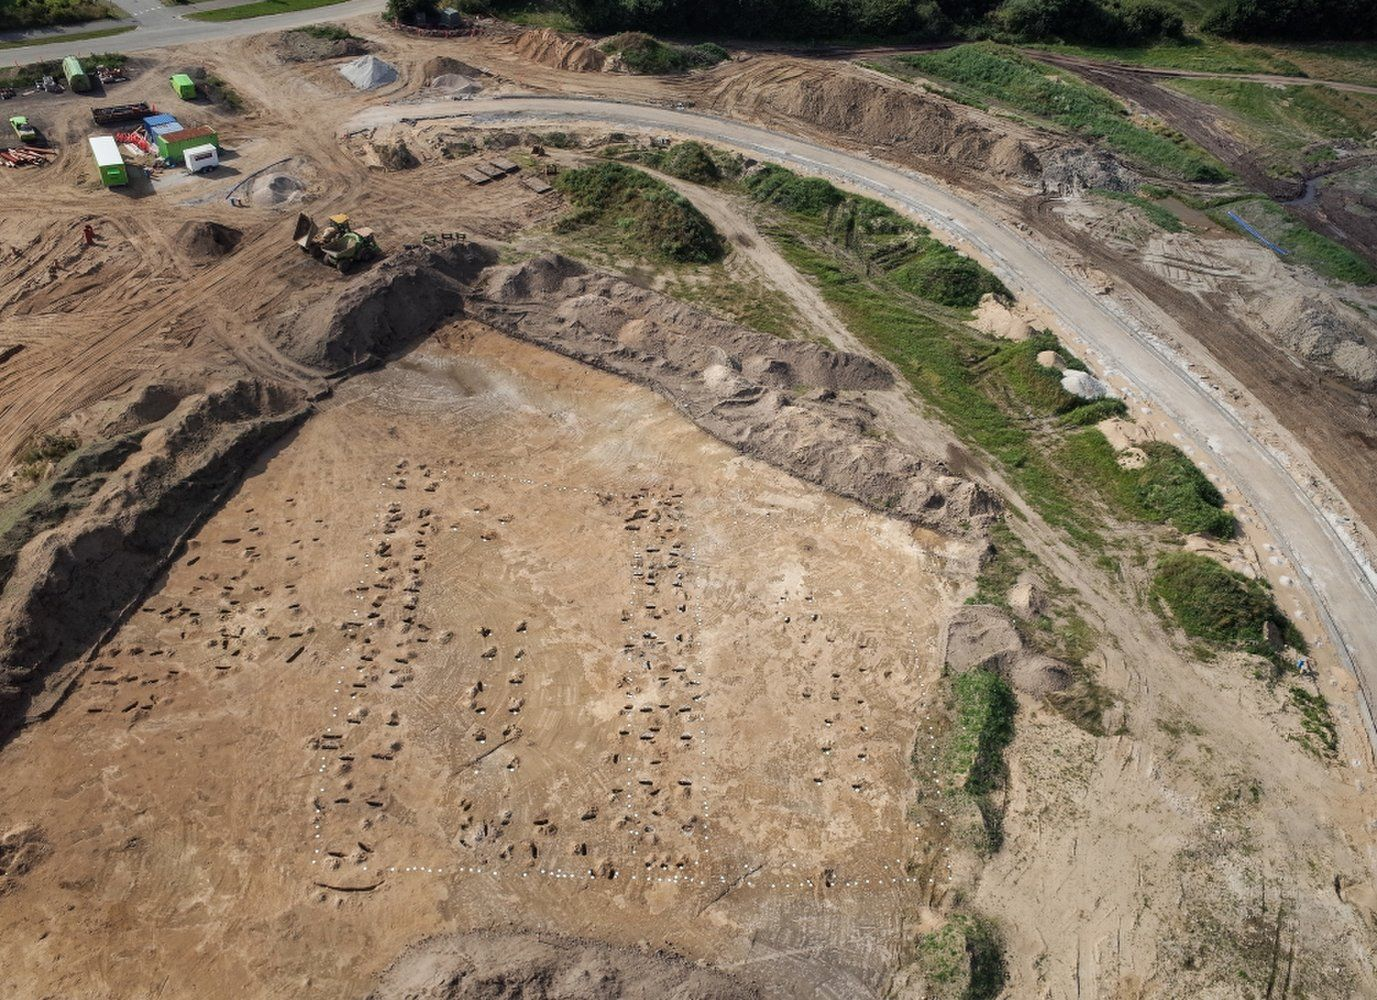 Early Medieval Farming Village Unearthed Near Famed Viking ...